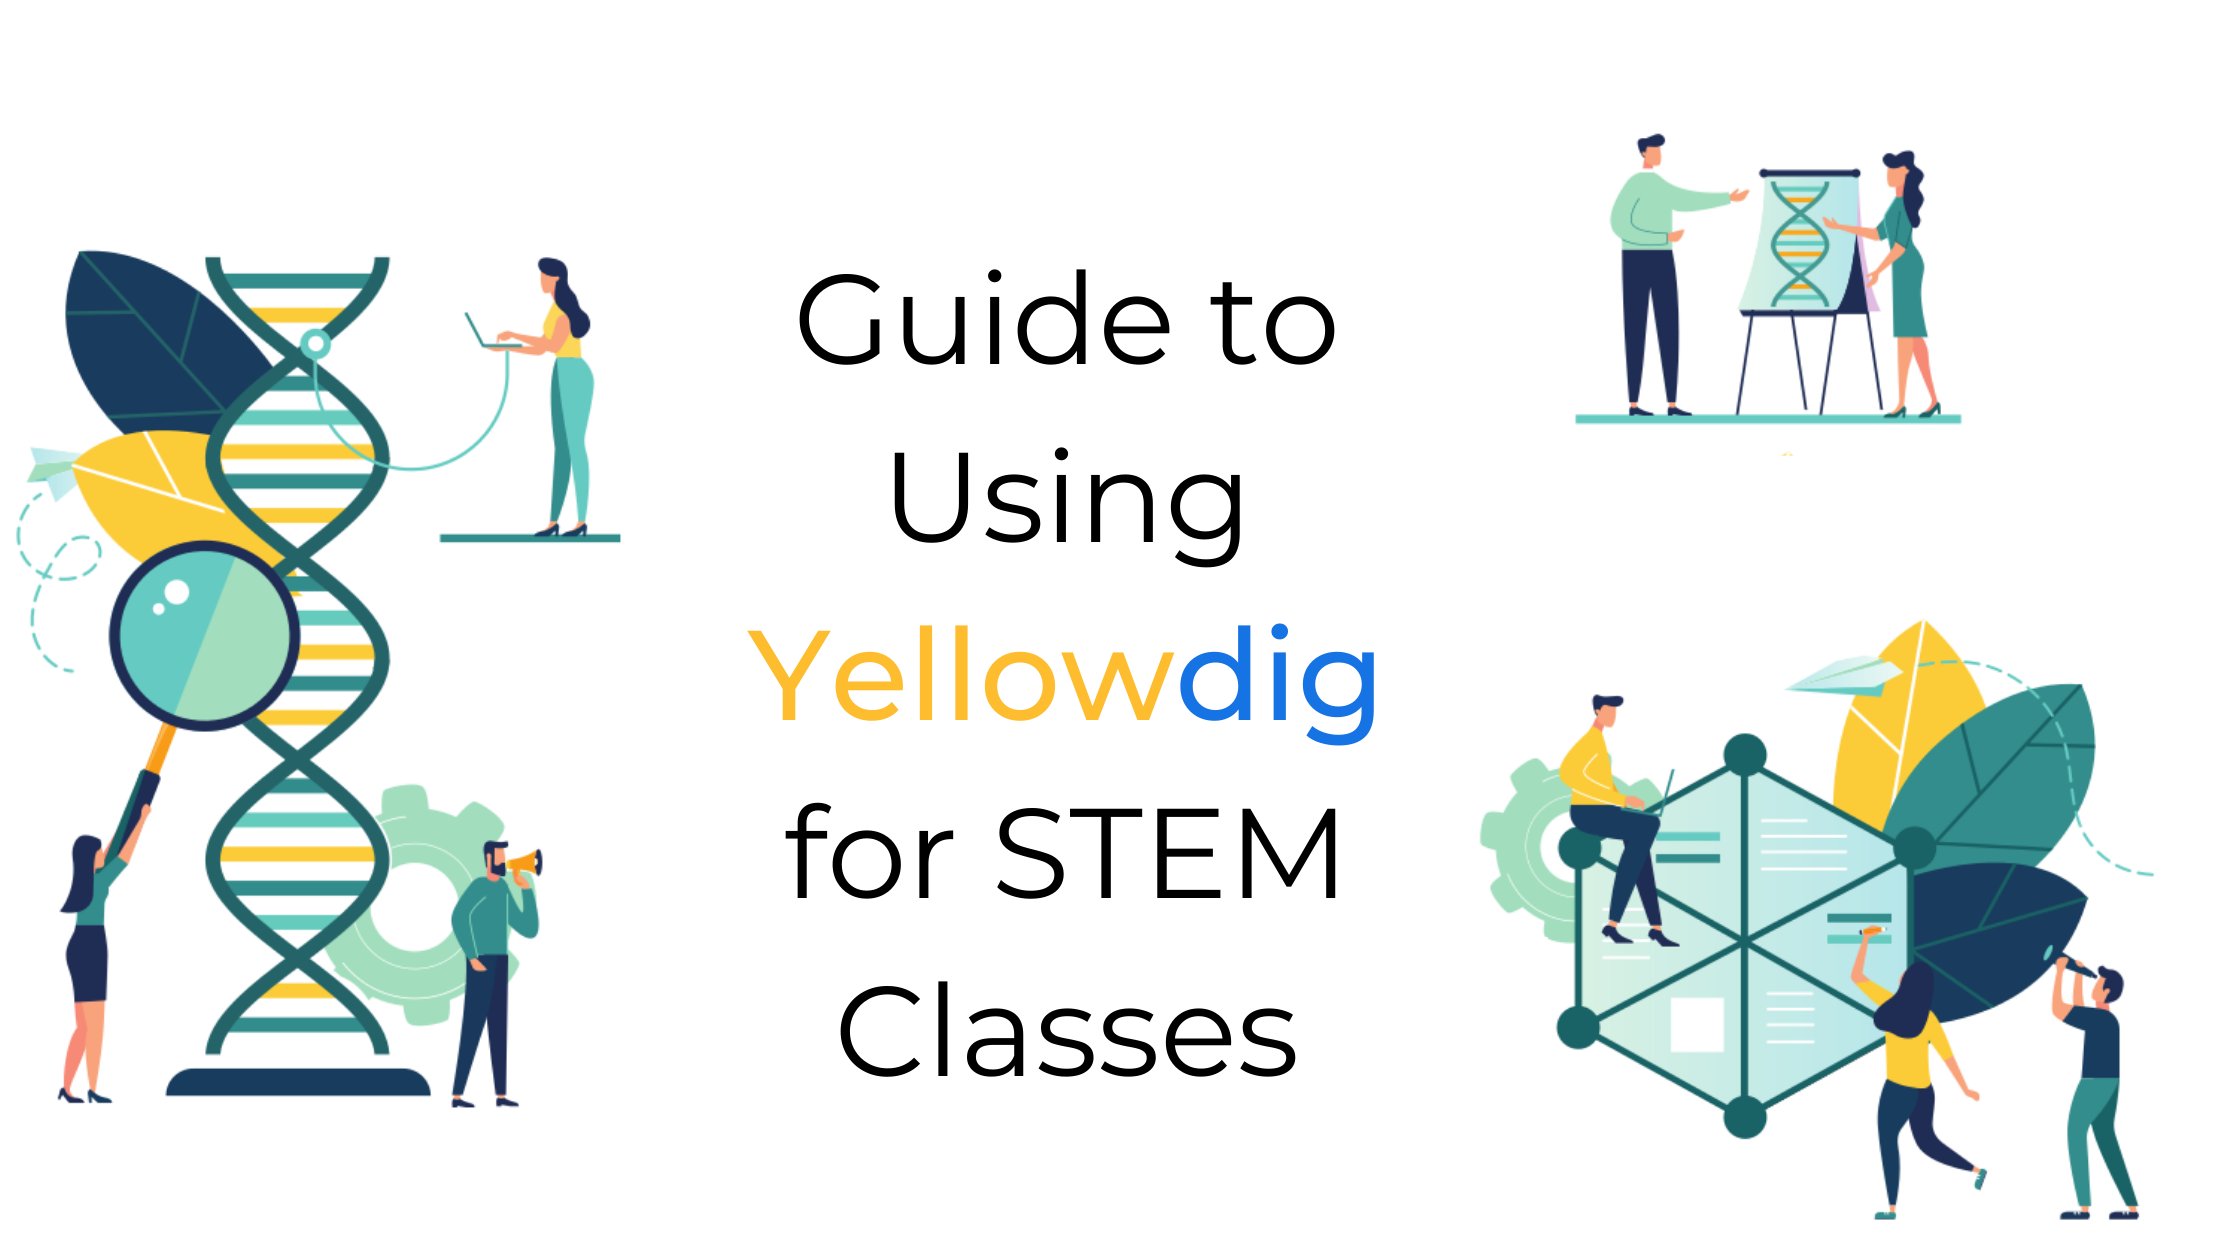 Guide to Using Yellowdig for STEM Classes